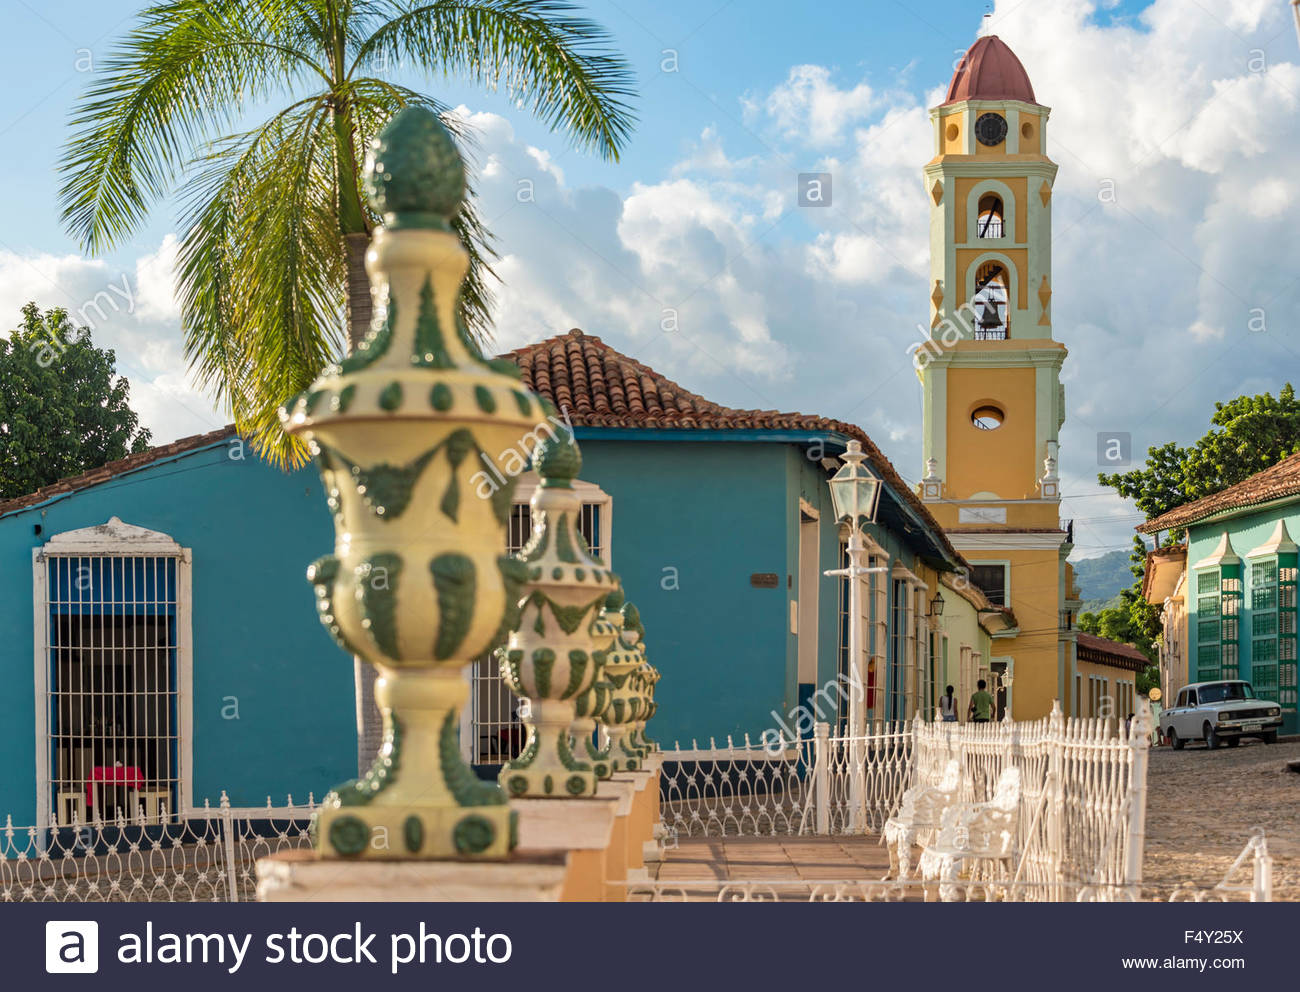 Trinidad de Cuba: Plaza Mayor with Saint Francis Church or Convent which currently is a museum for the Fight Against - Stock Image